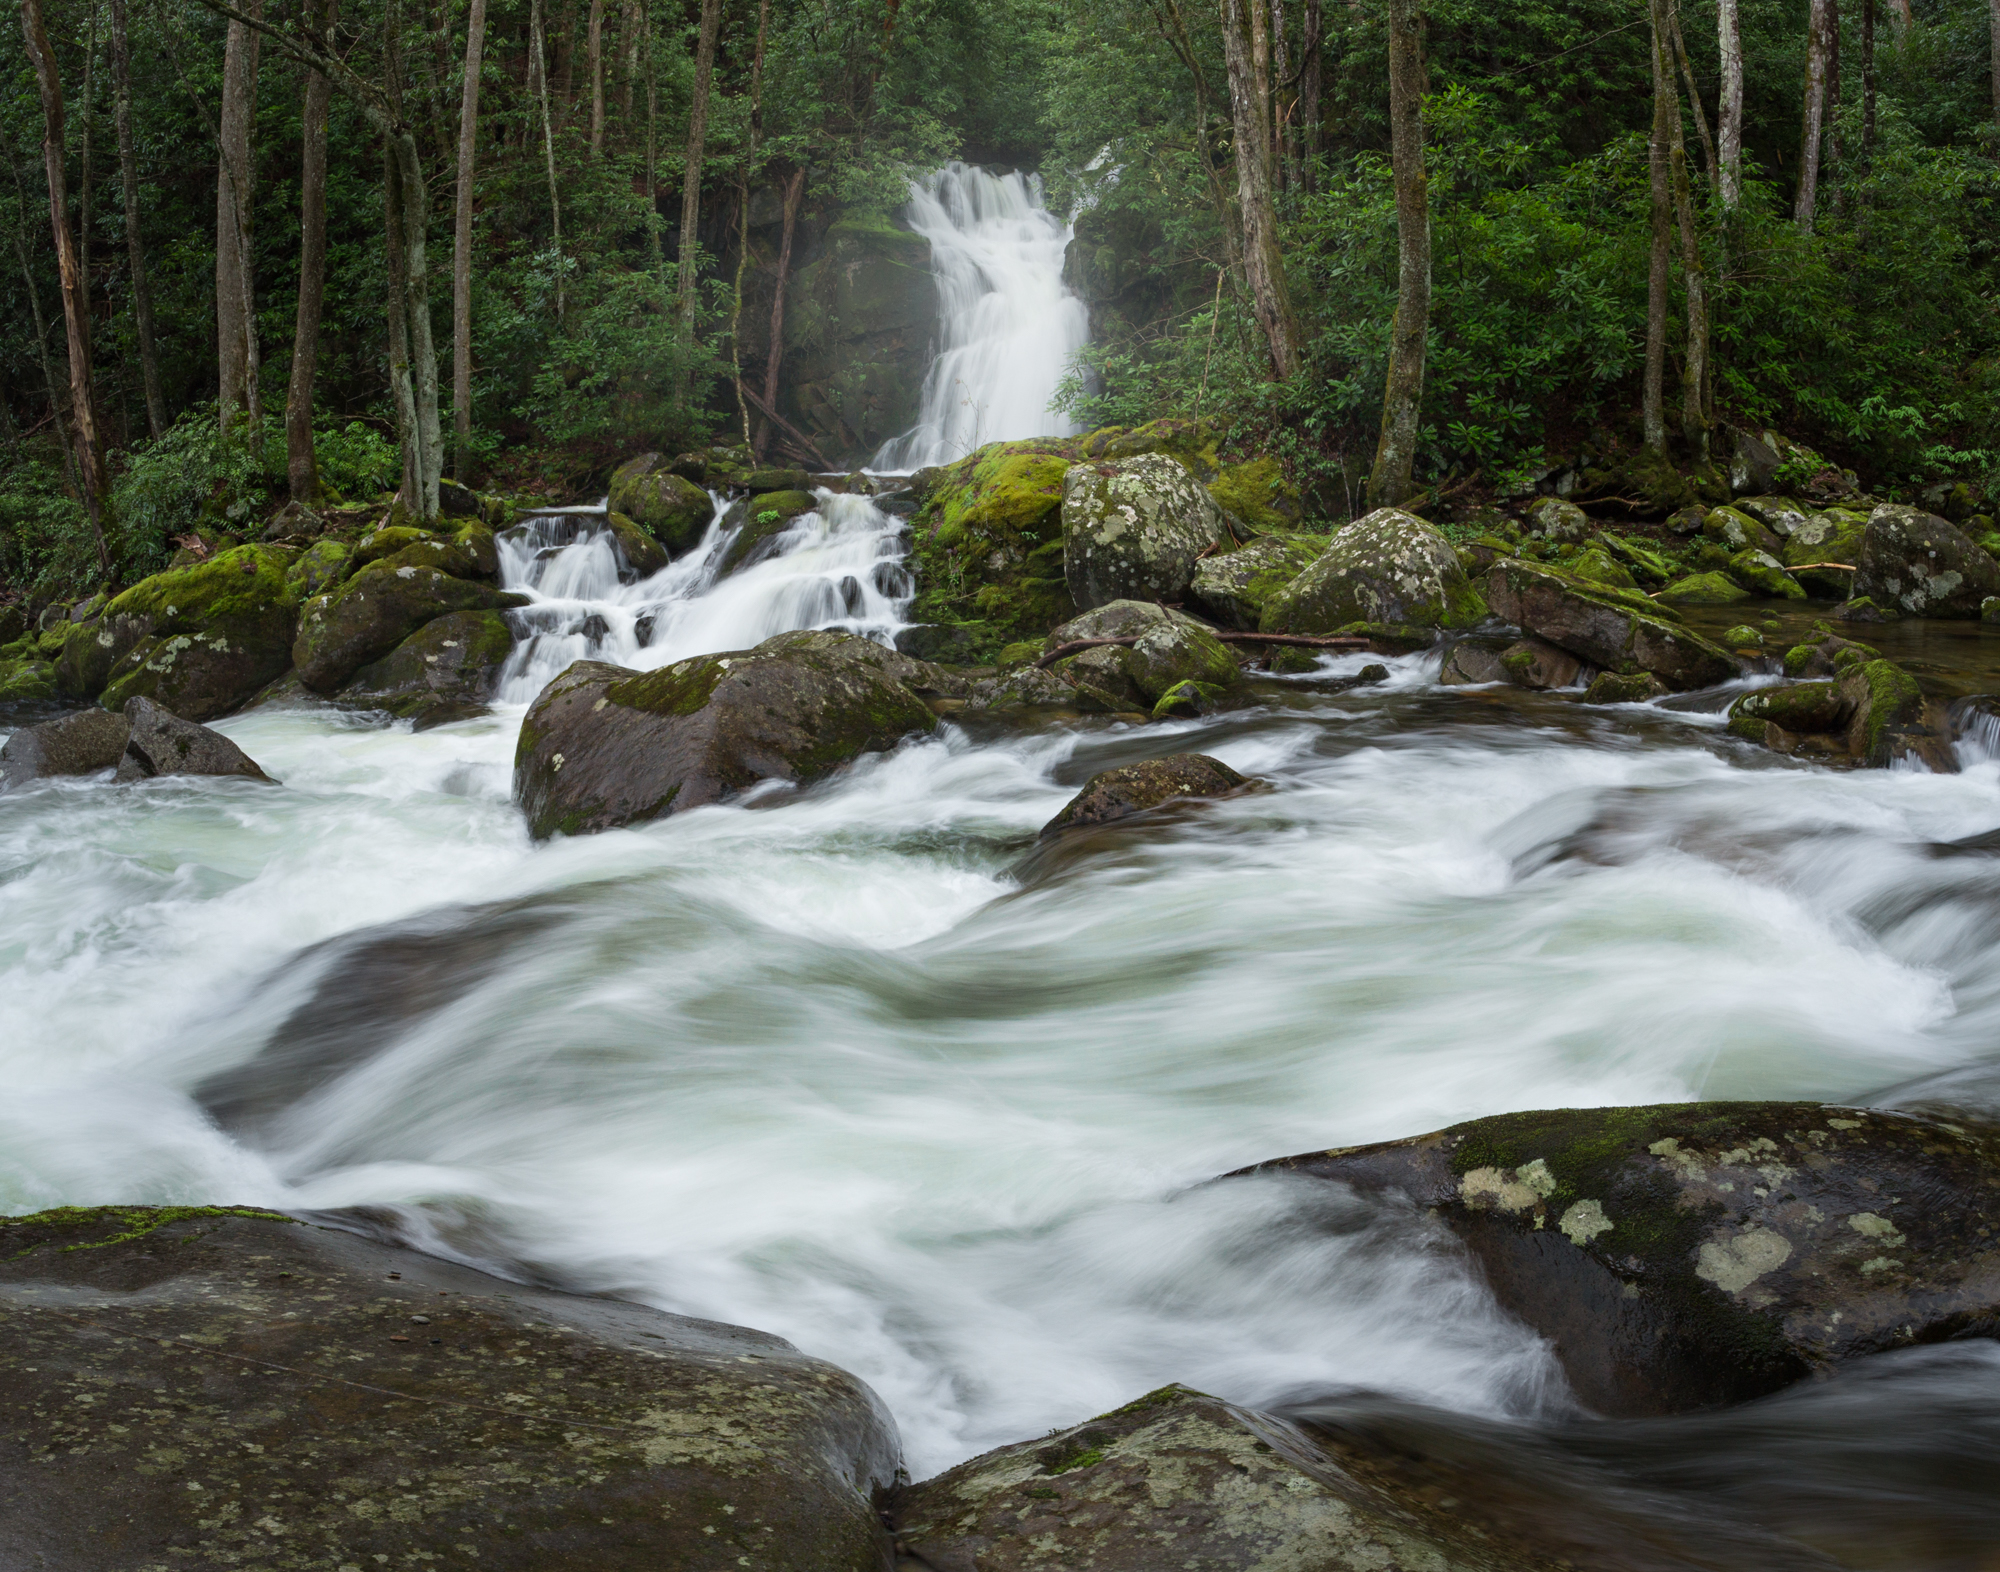 16. Mouse Creek Falls, Big Creek, Great Smoky Mountains National Park